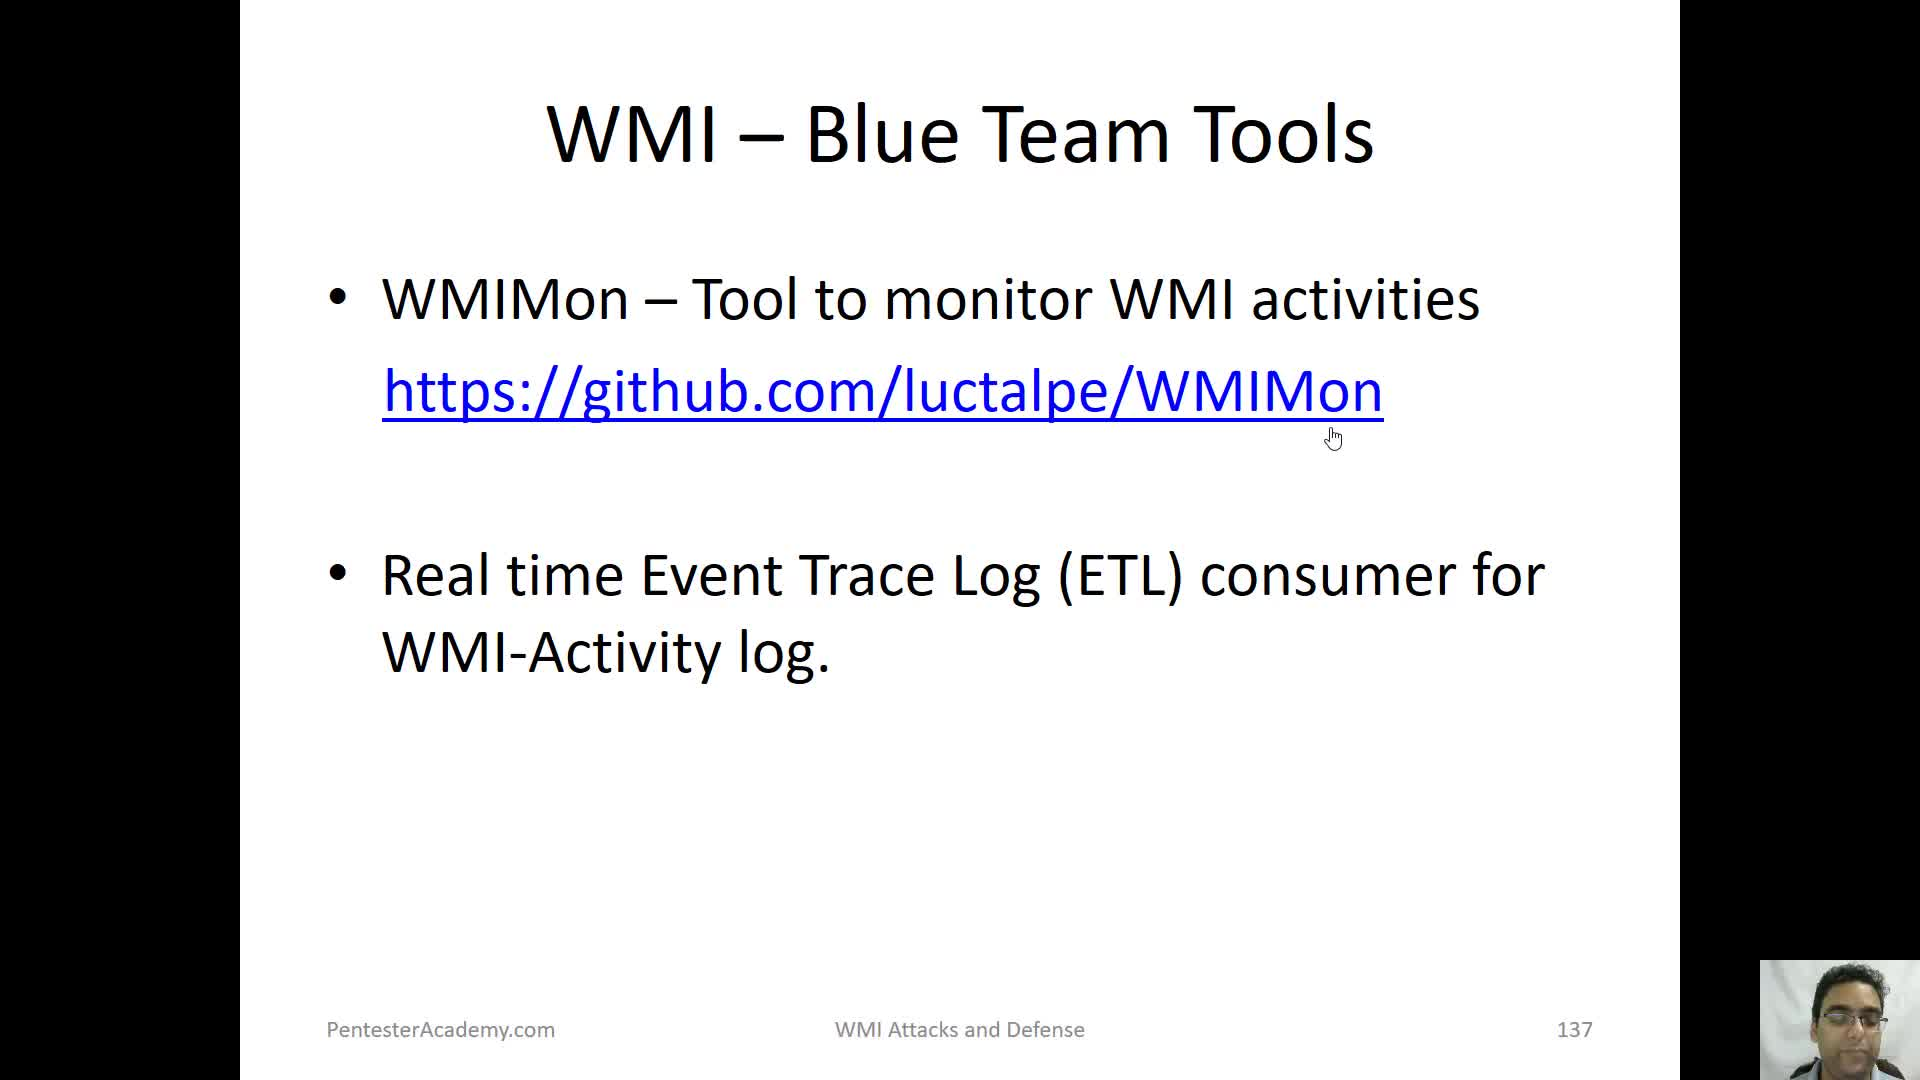 Blue Team Tools